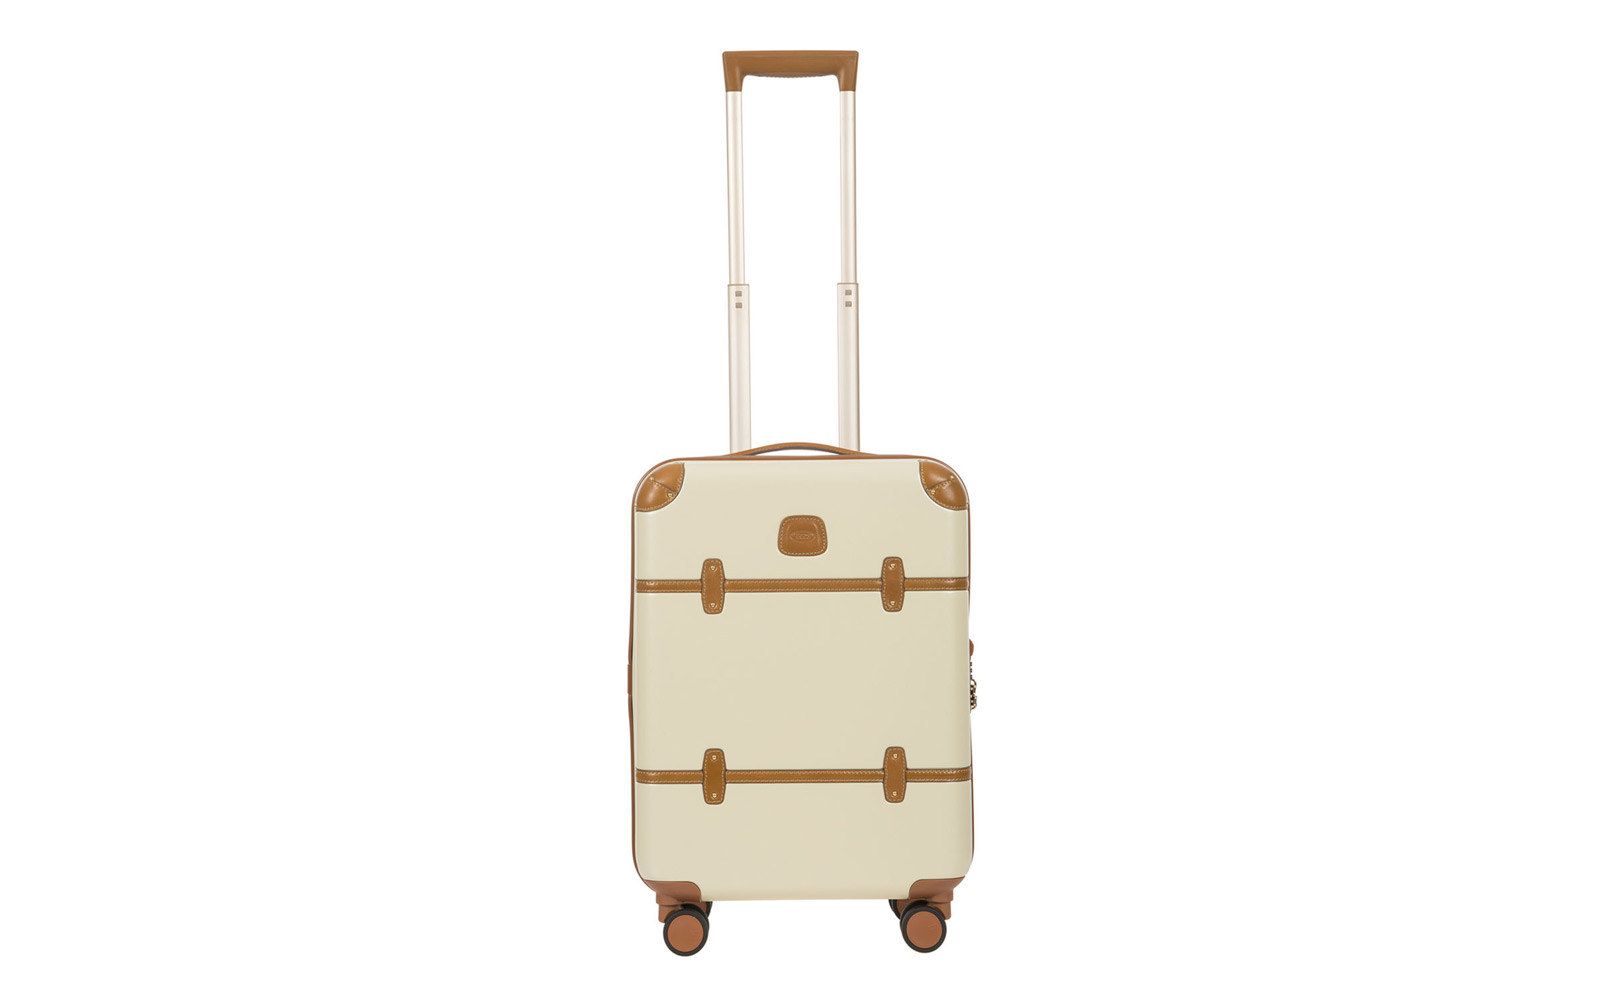 International Carry On Luggage Brics